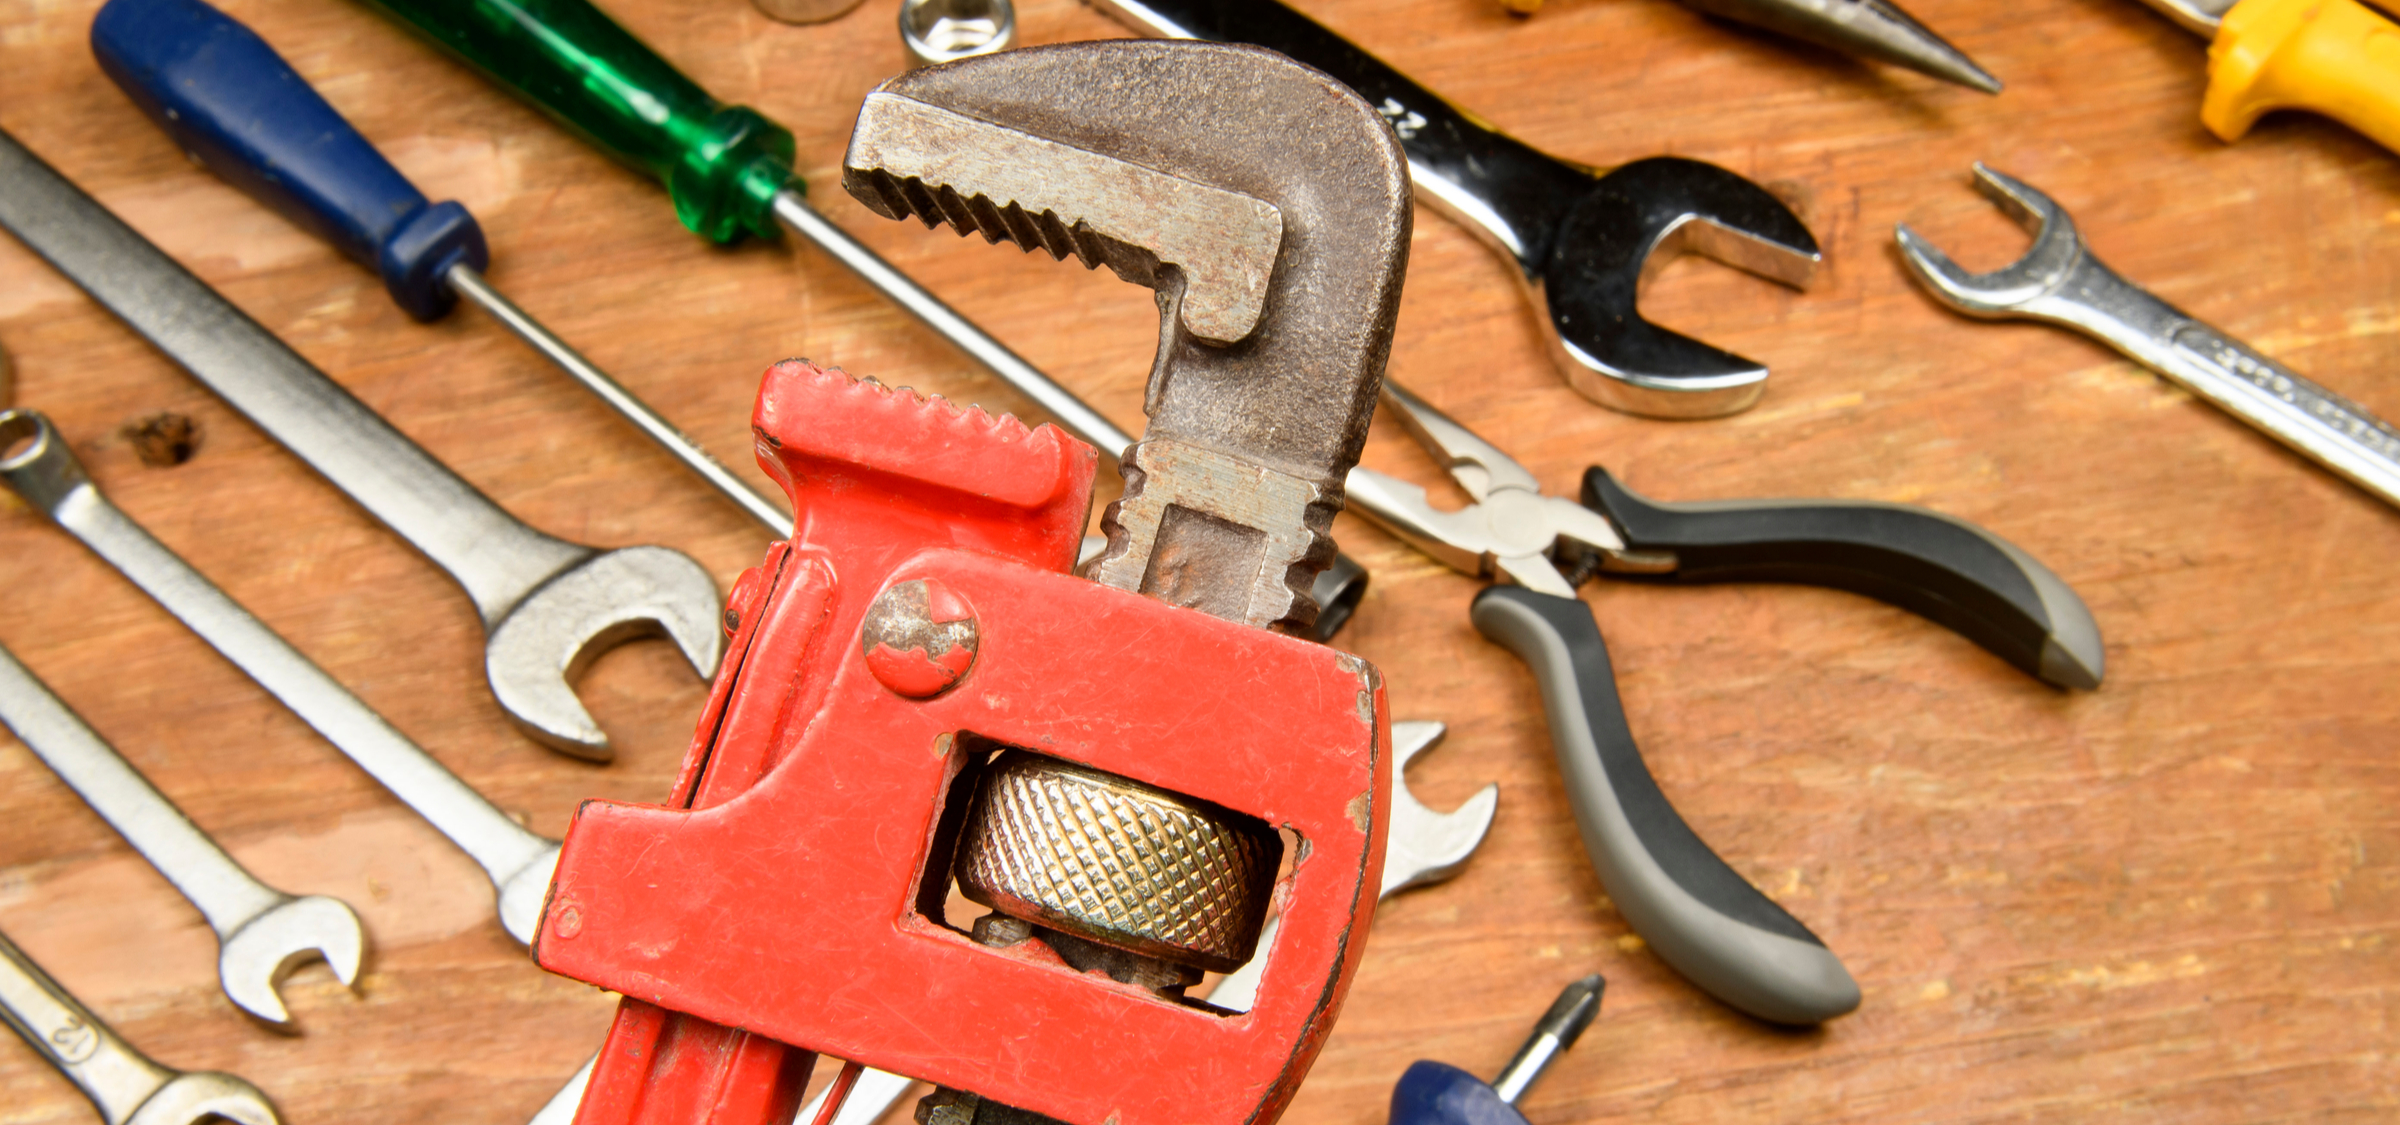 35 Best Plumbing Tools for Plumbers for 2021